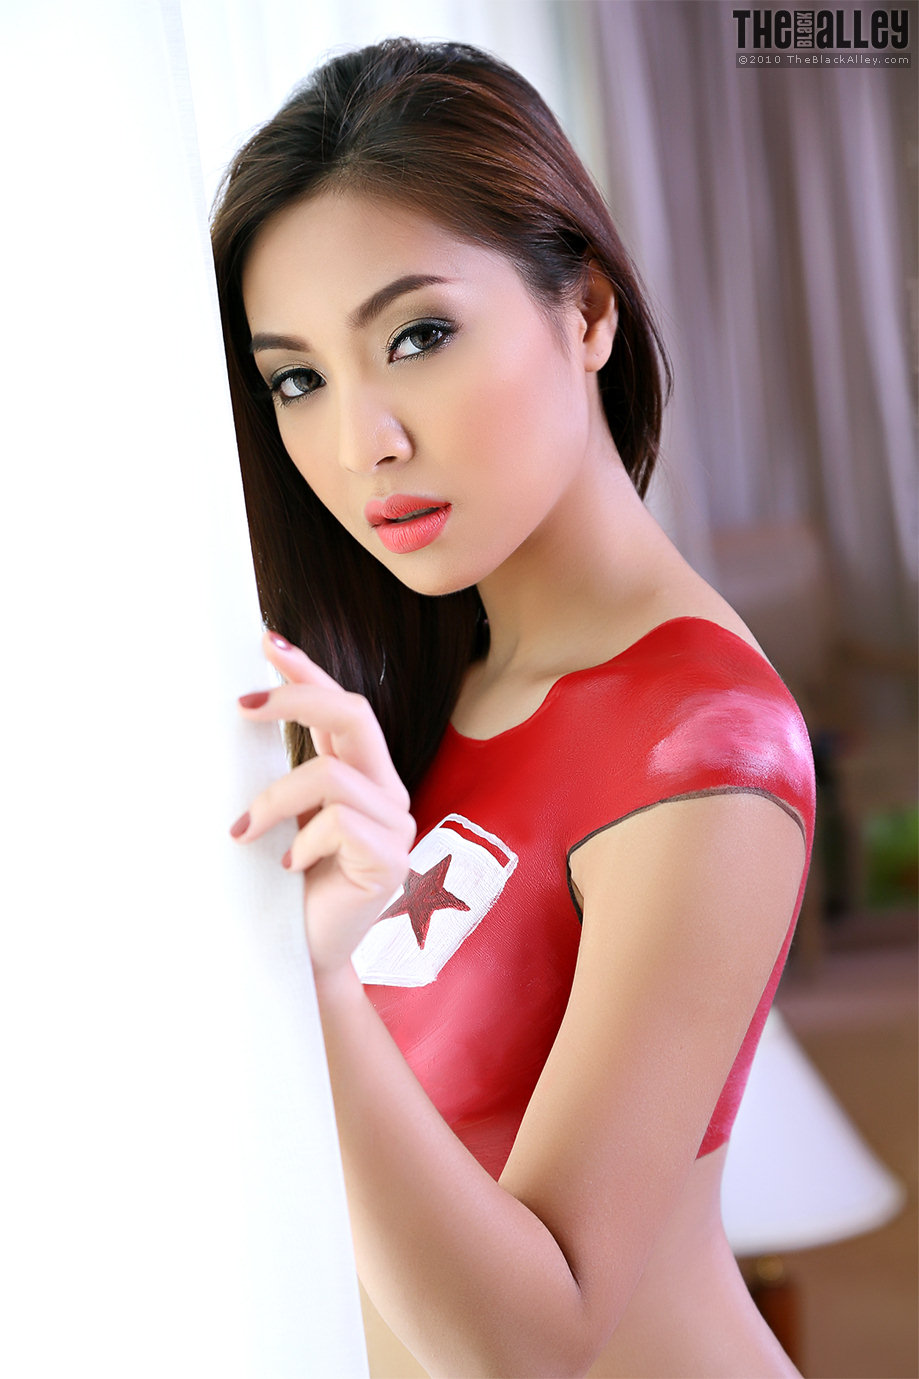 Asian Girl Body Paint